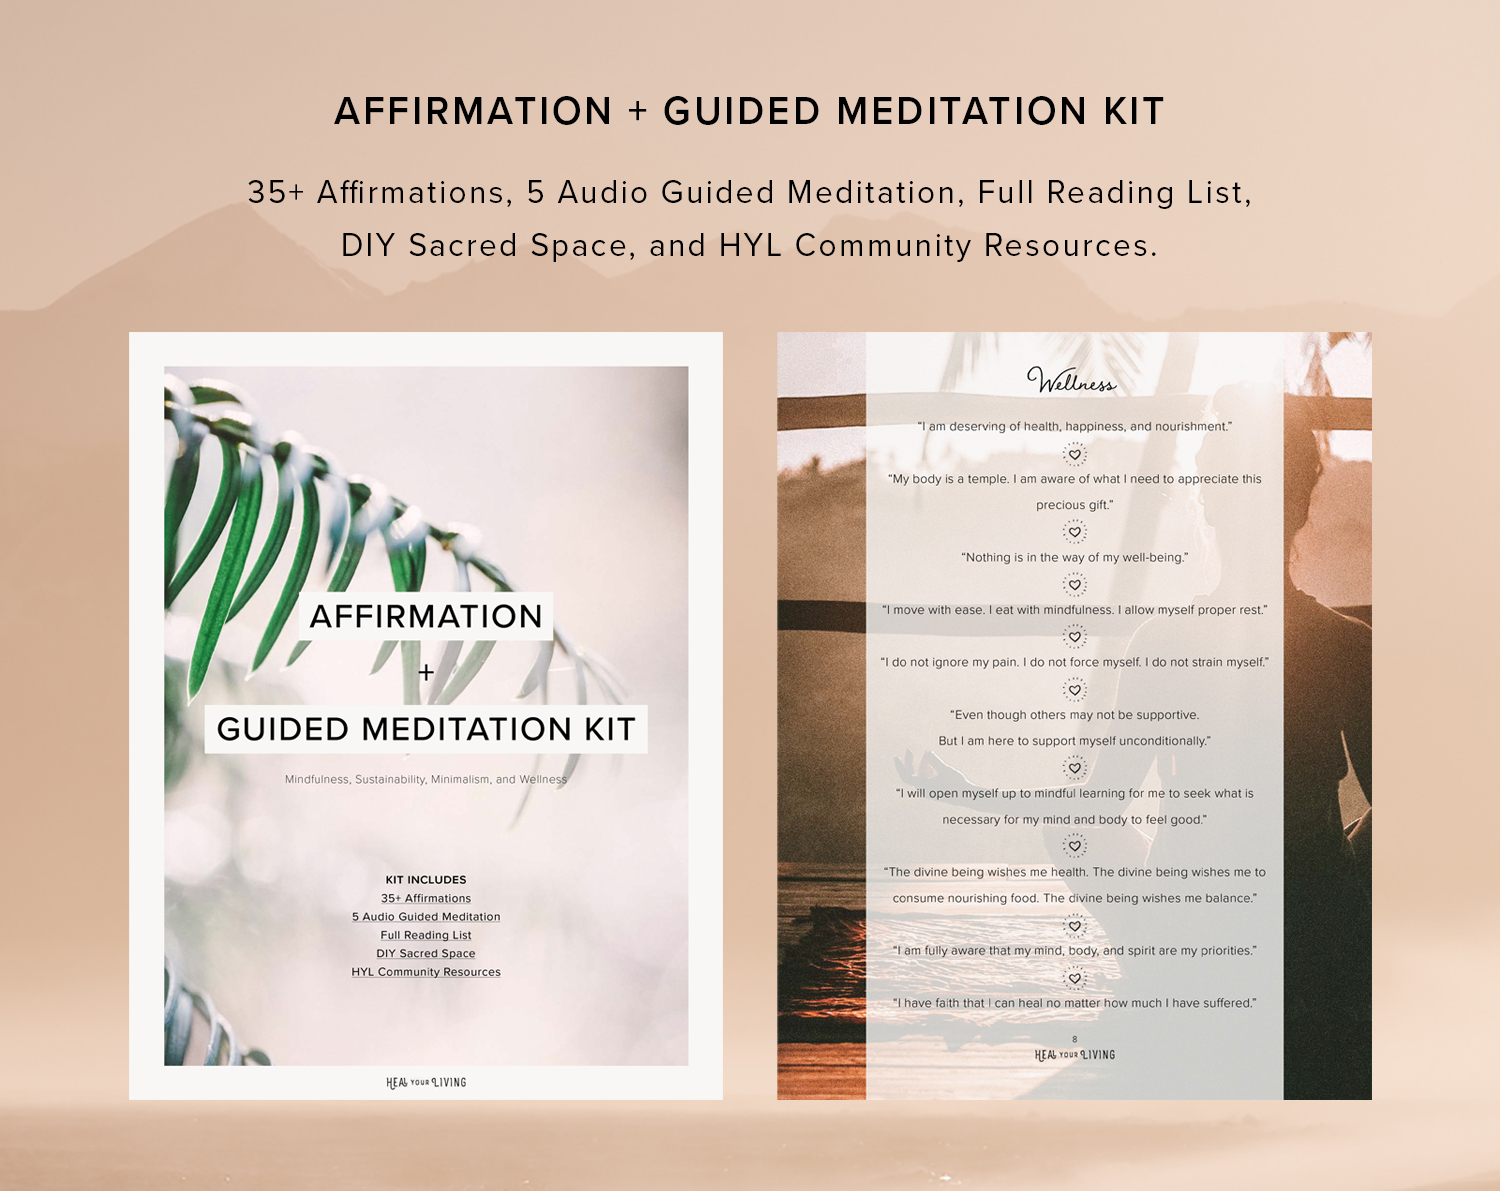 affirmation and guided meditation kit heal your living.jpg